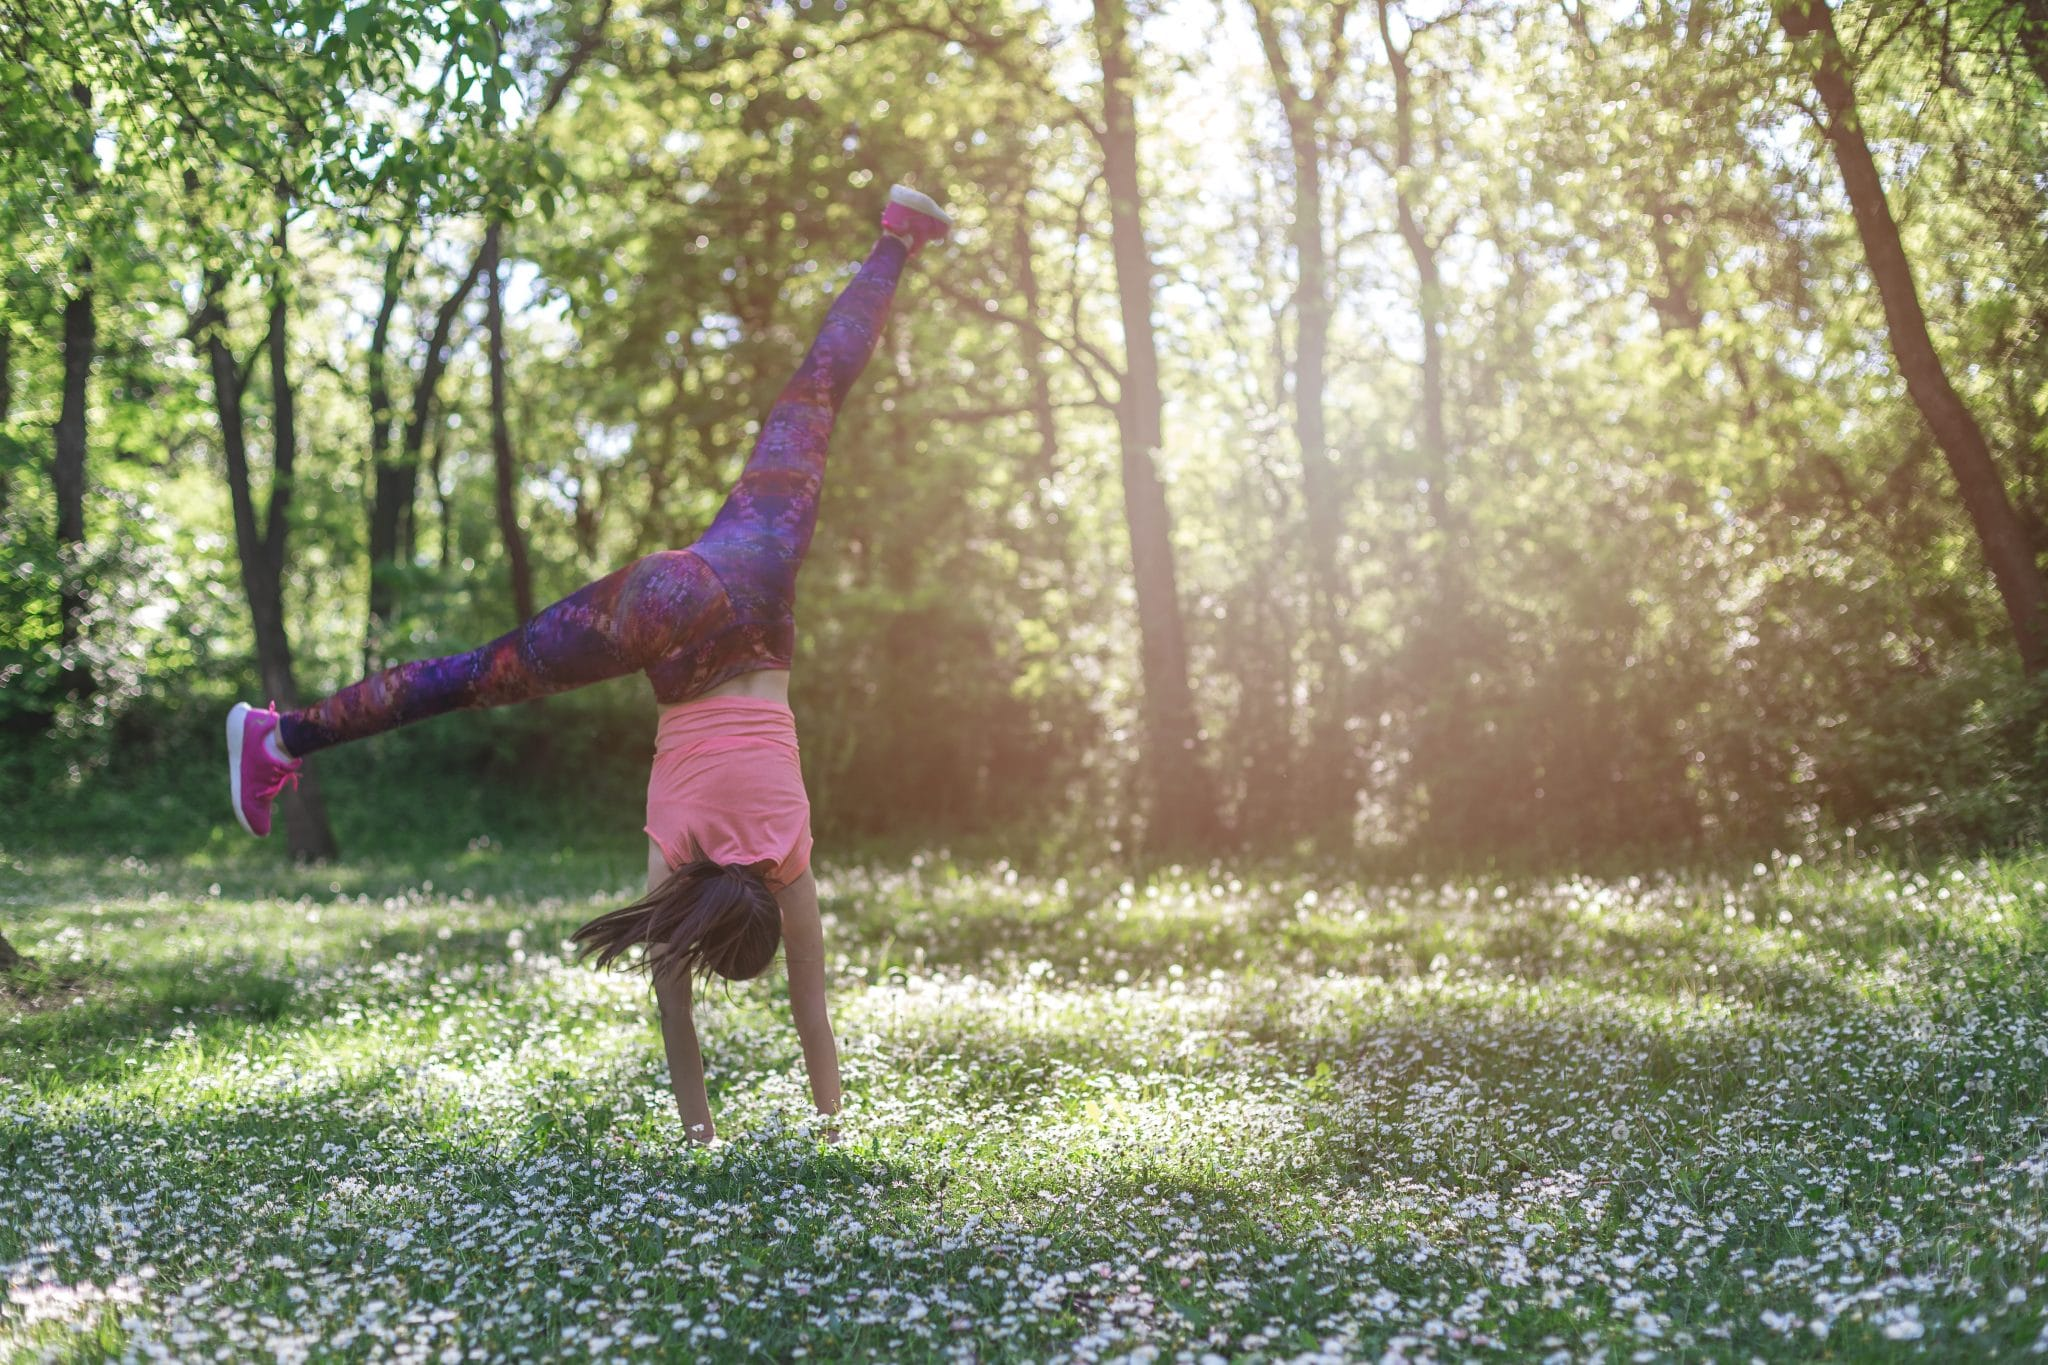 sport girl makes a cartwheeling on a field of flowers - sunny day in a park/forest